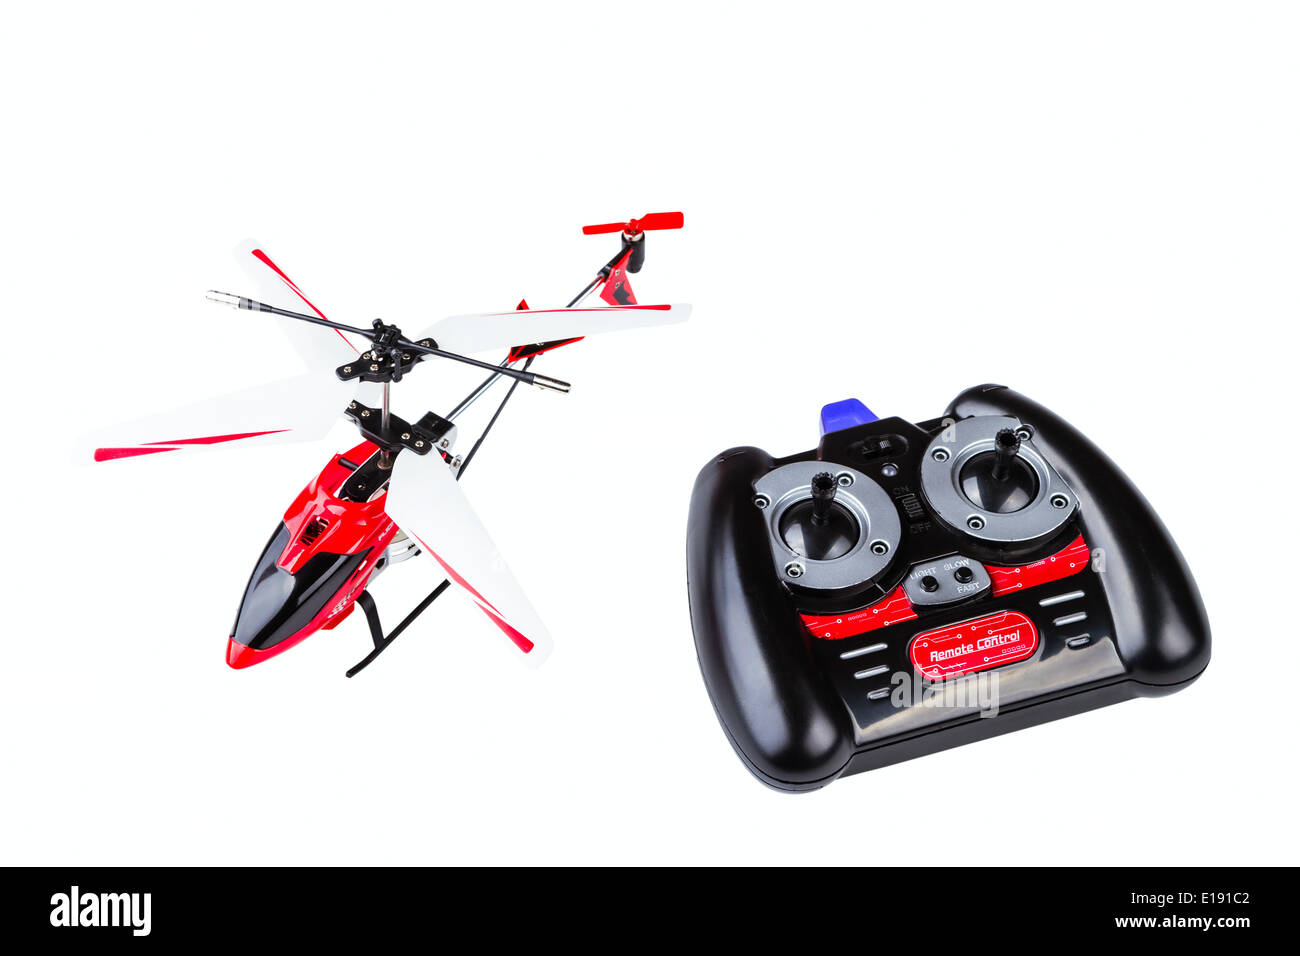 radio-controlled model of the helicopter with the control panel isolated on a white background - Stock Image